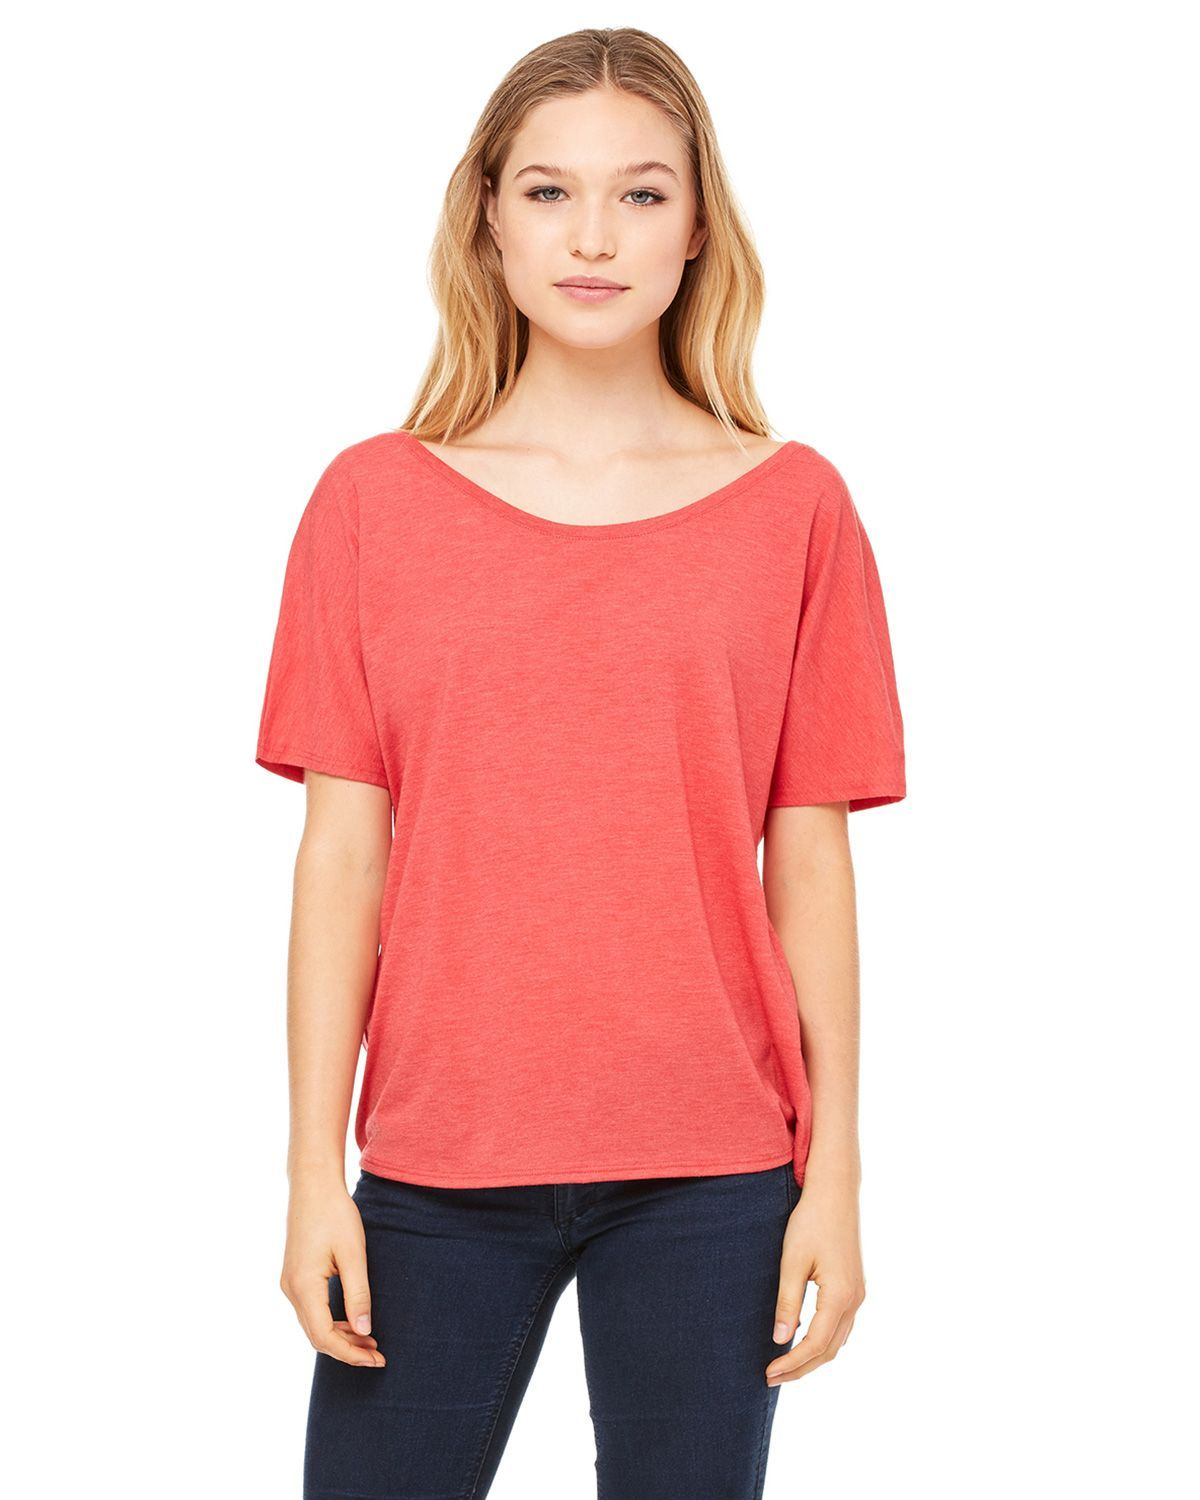 Bella + Canvas 8816 Women's Flowy Simple T-Shirt - Red Triblend - S from Bella + Canvas